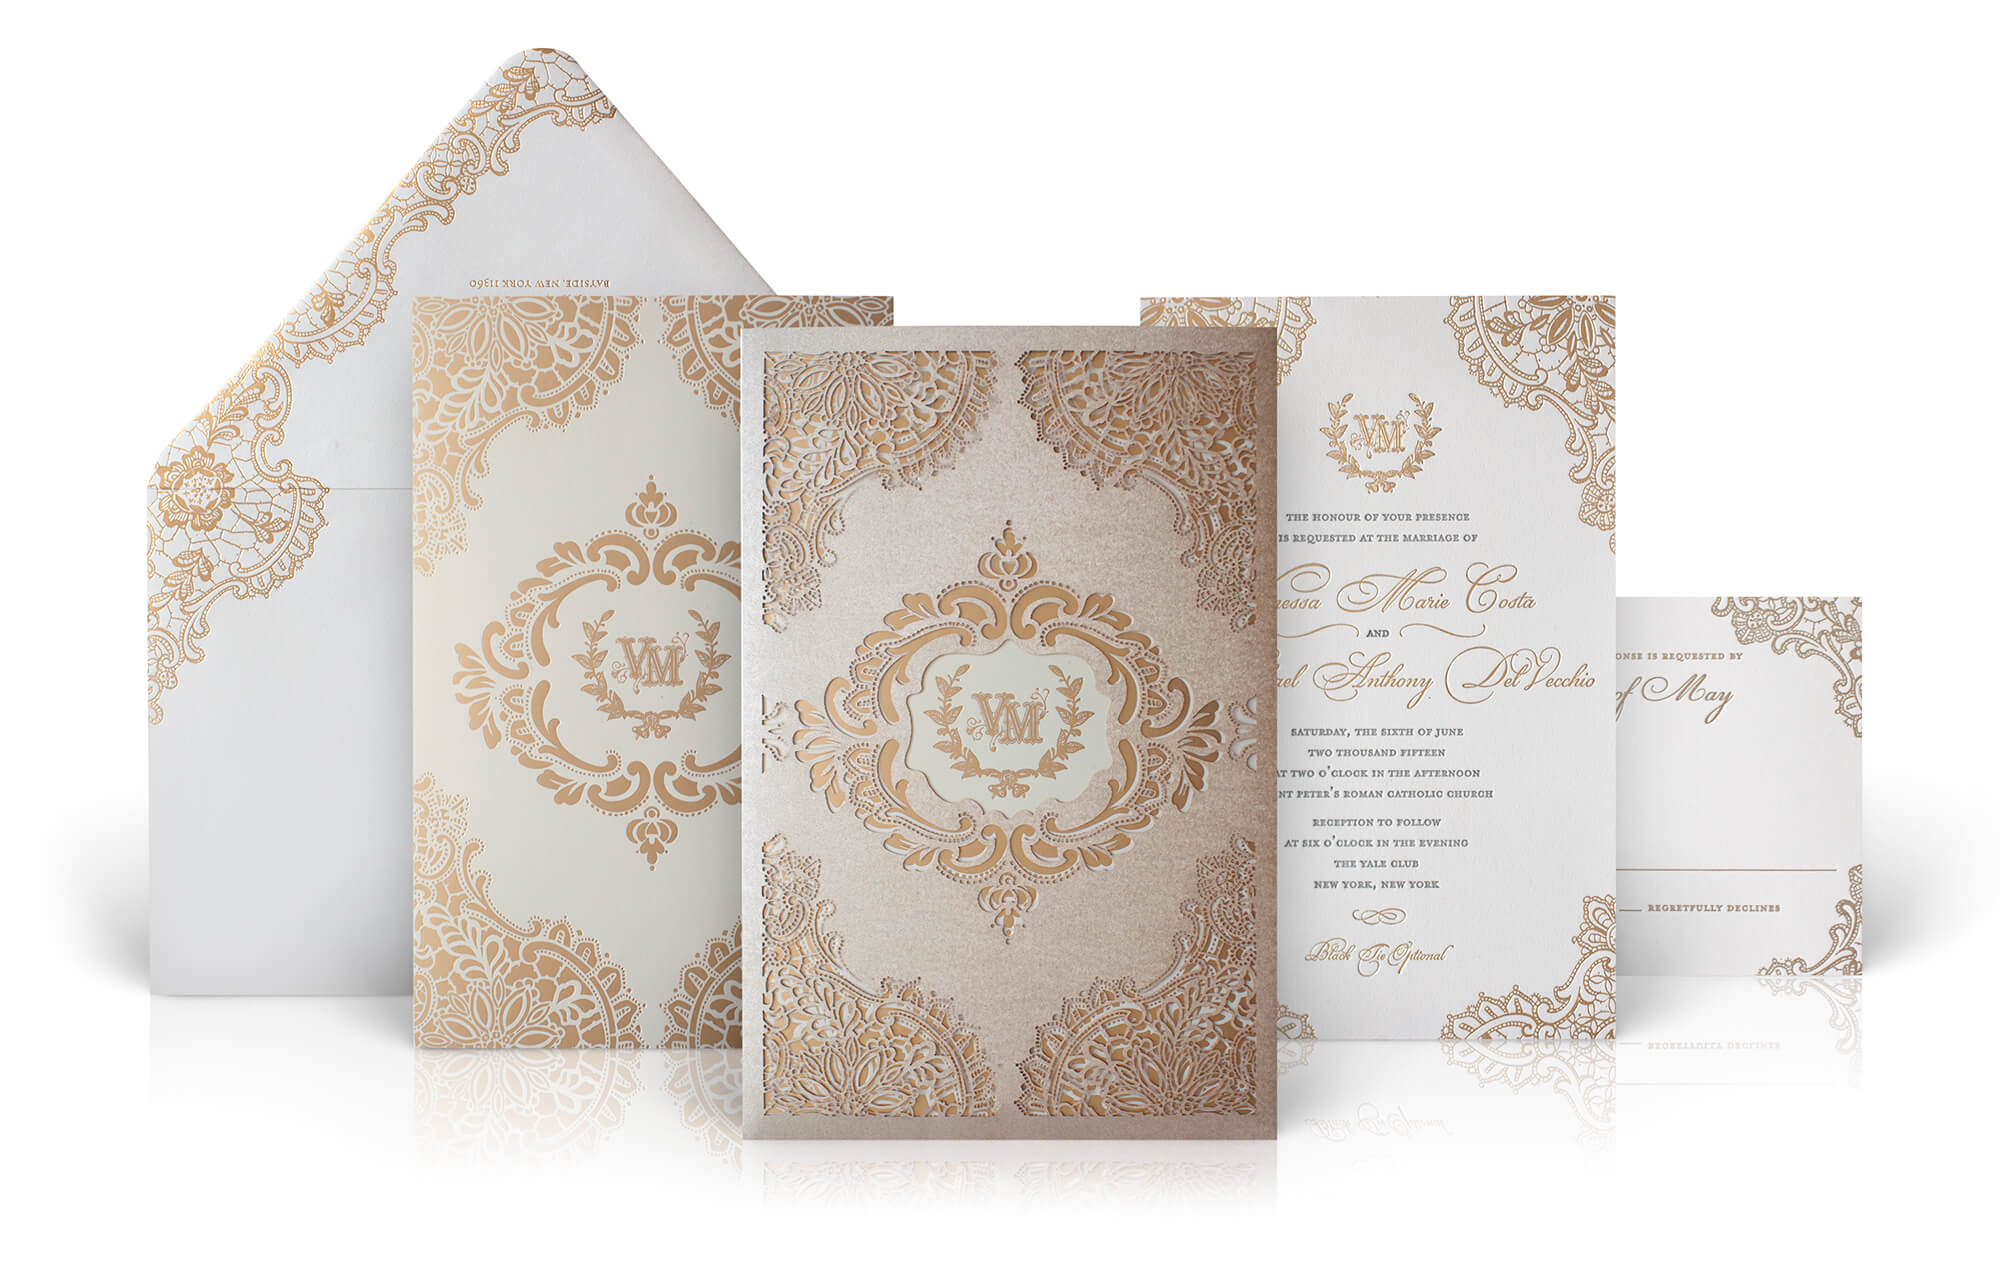 Ornate gold lace wedding invitation